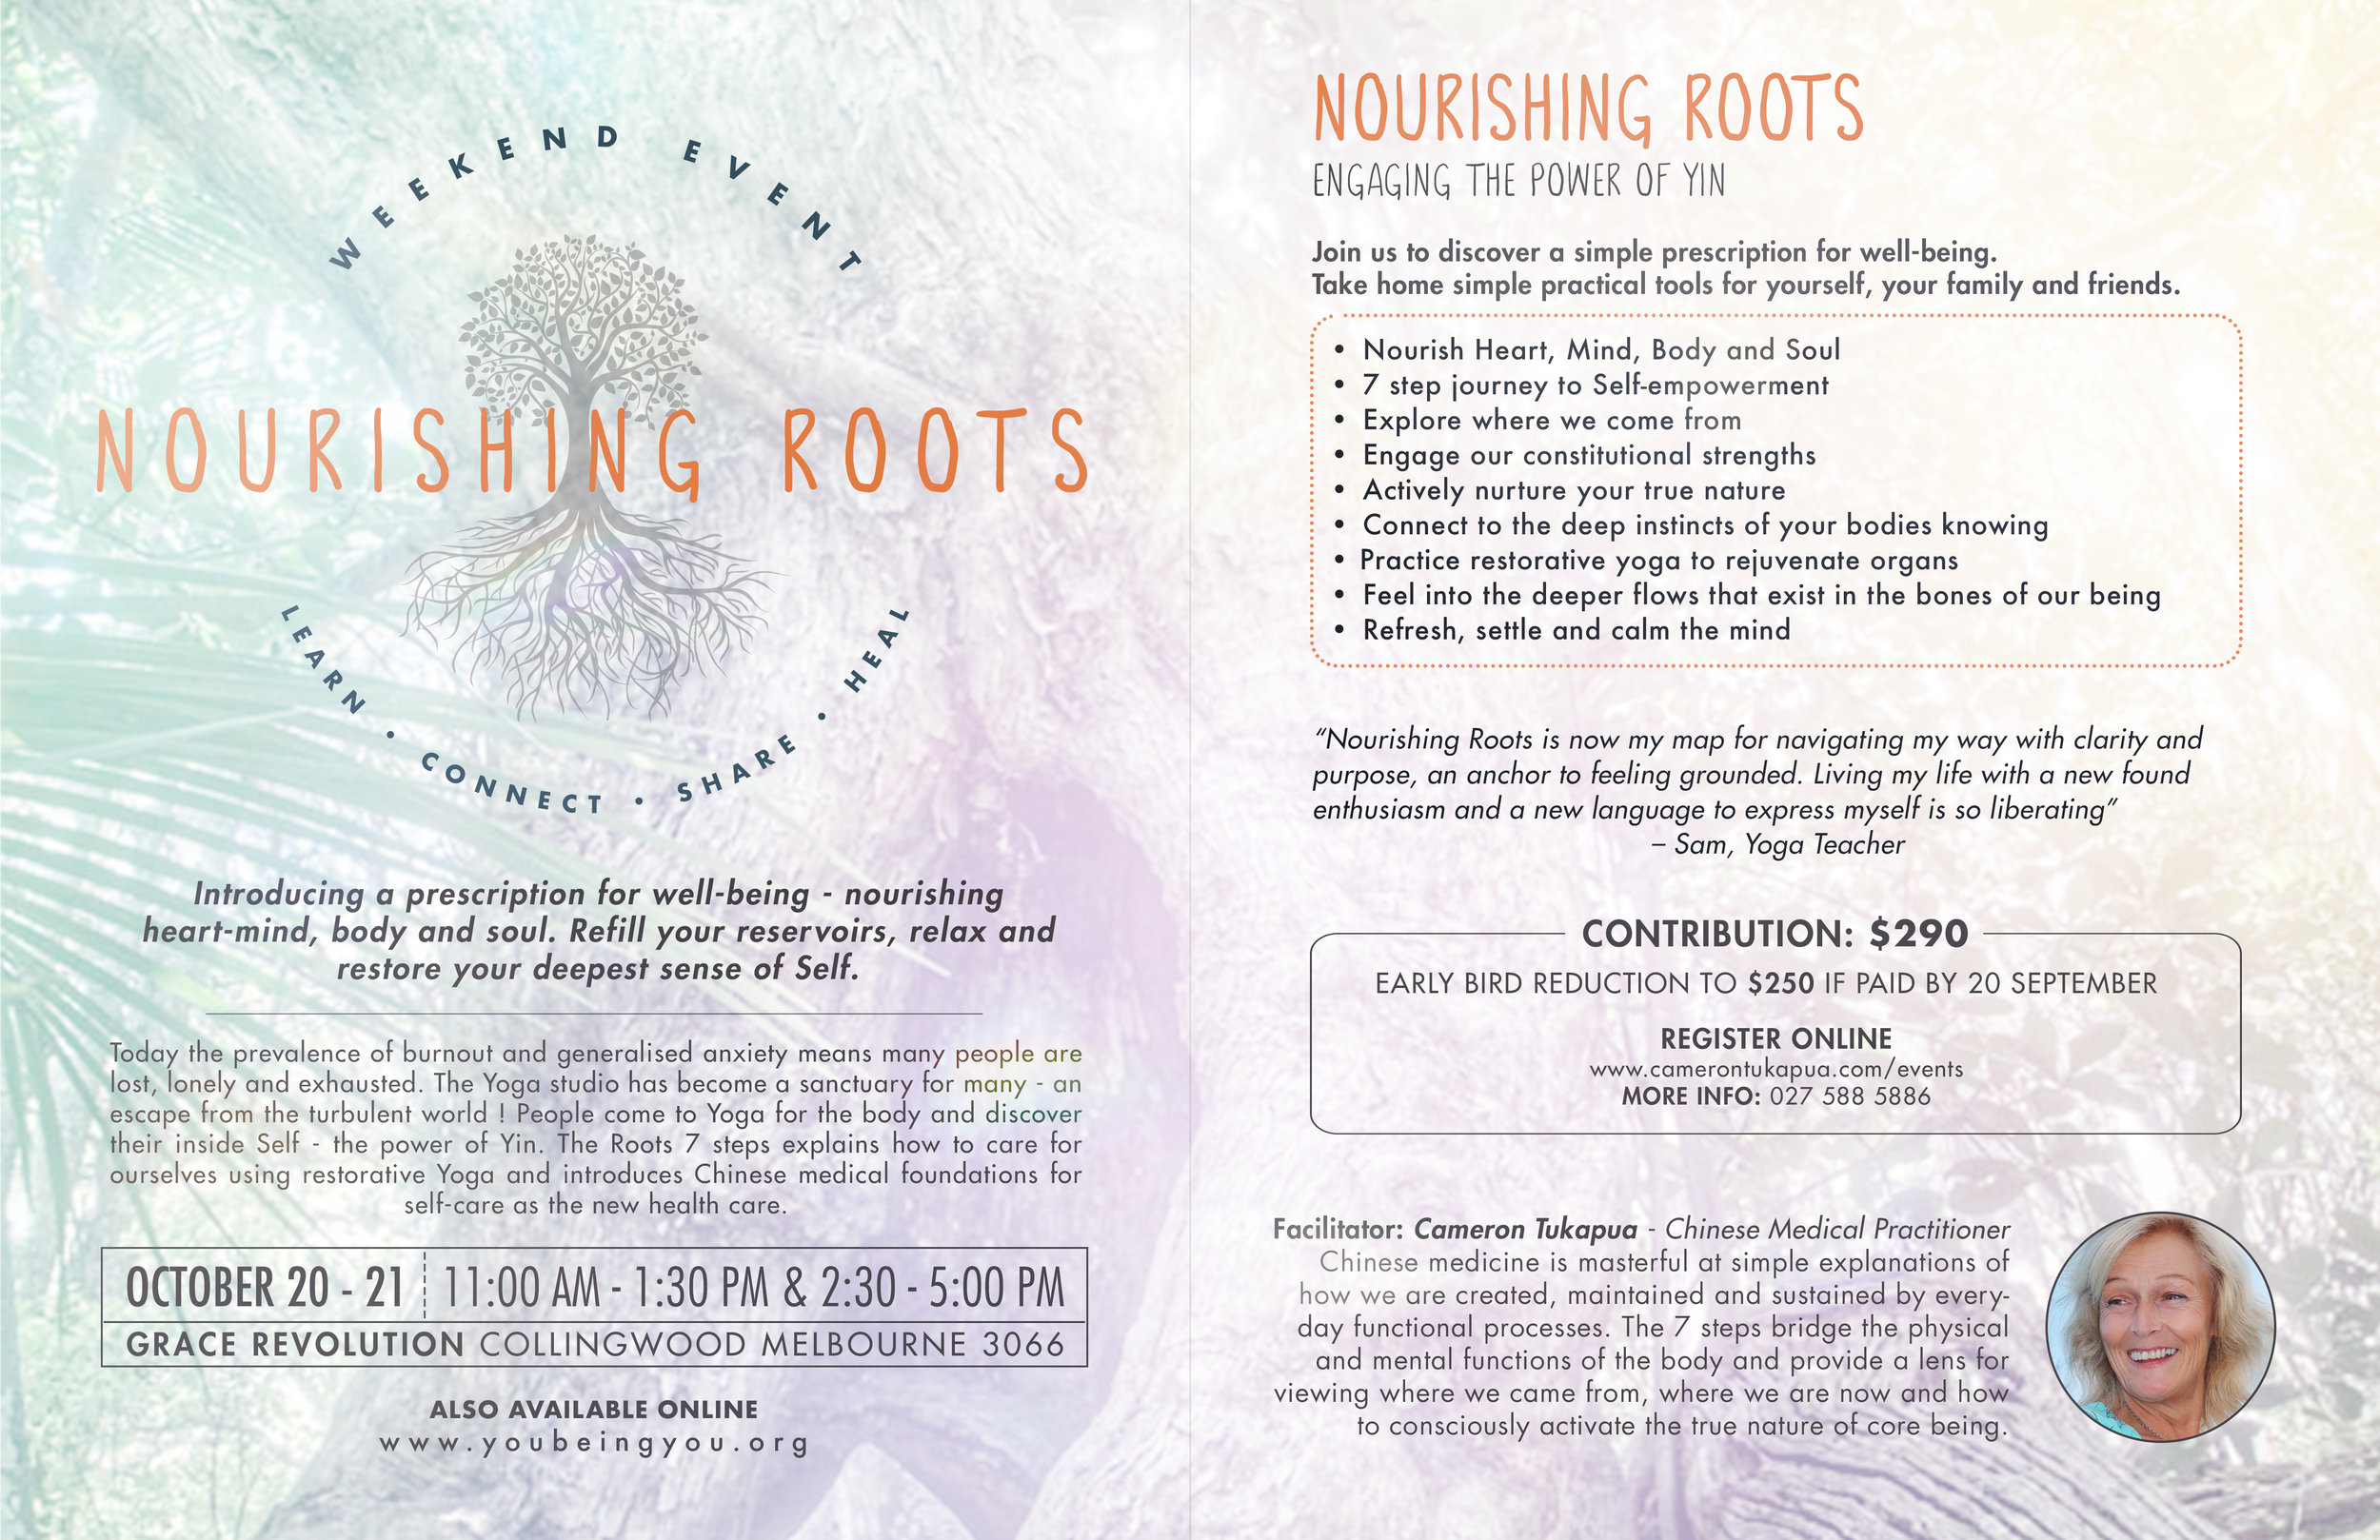 Nourishing Roots MELBOURNE